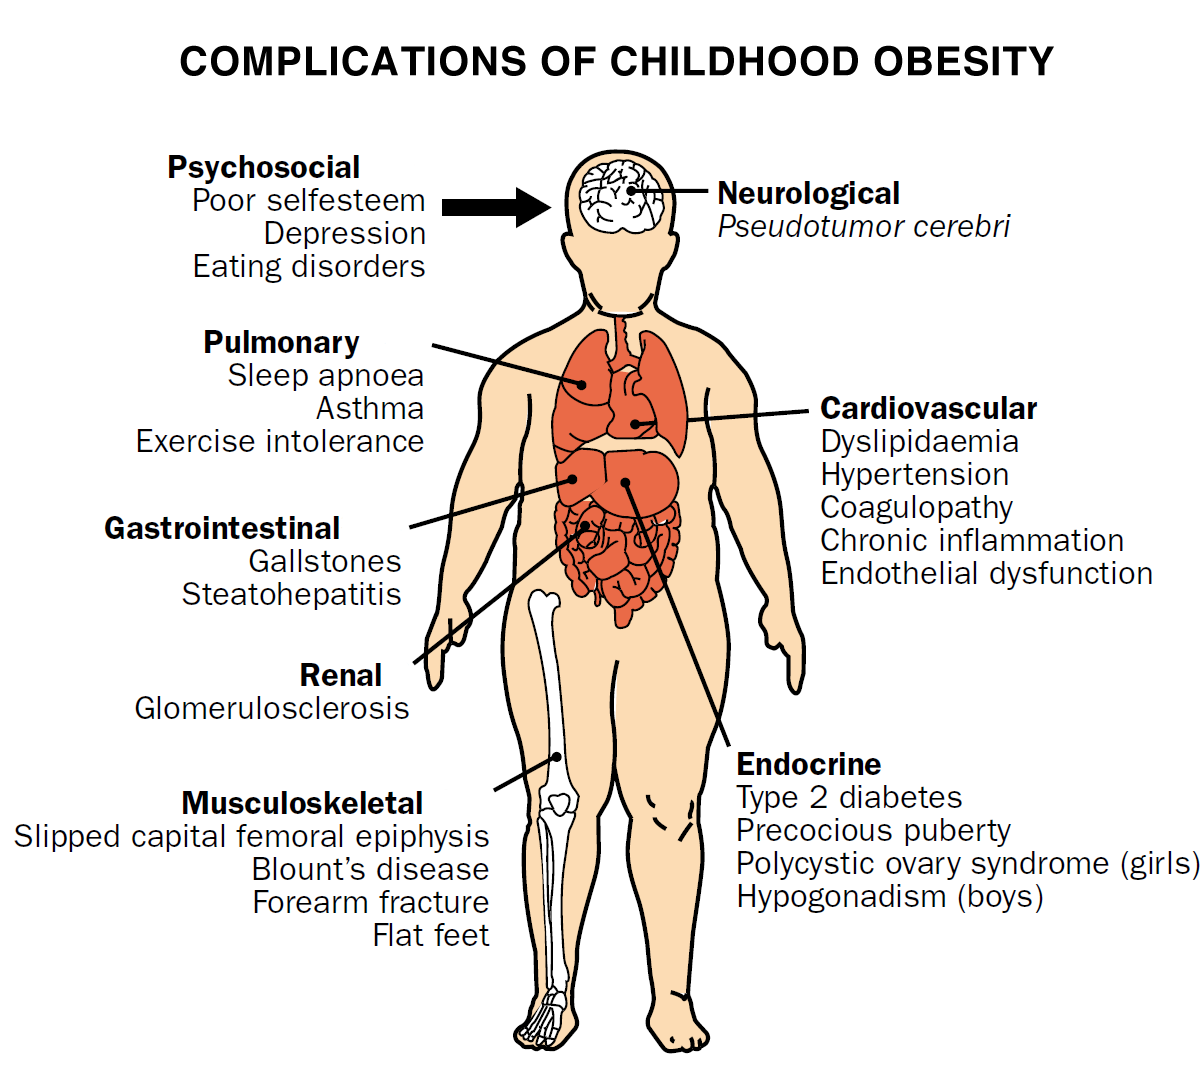 Complications from Childhood Obesity